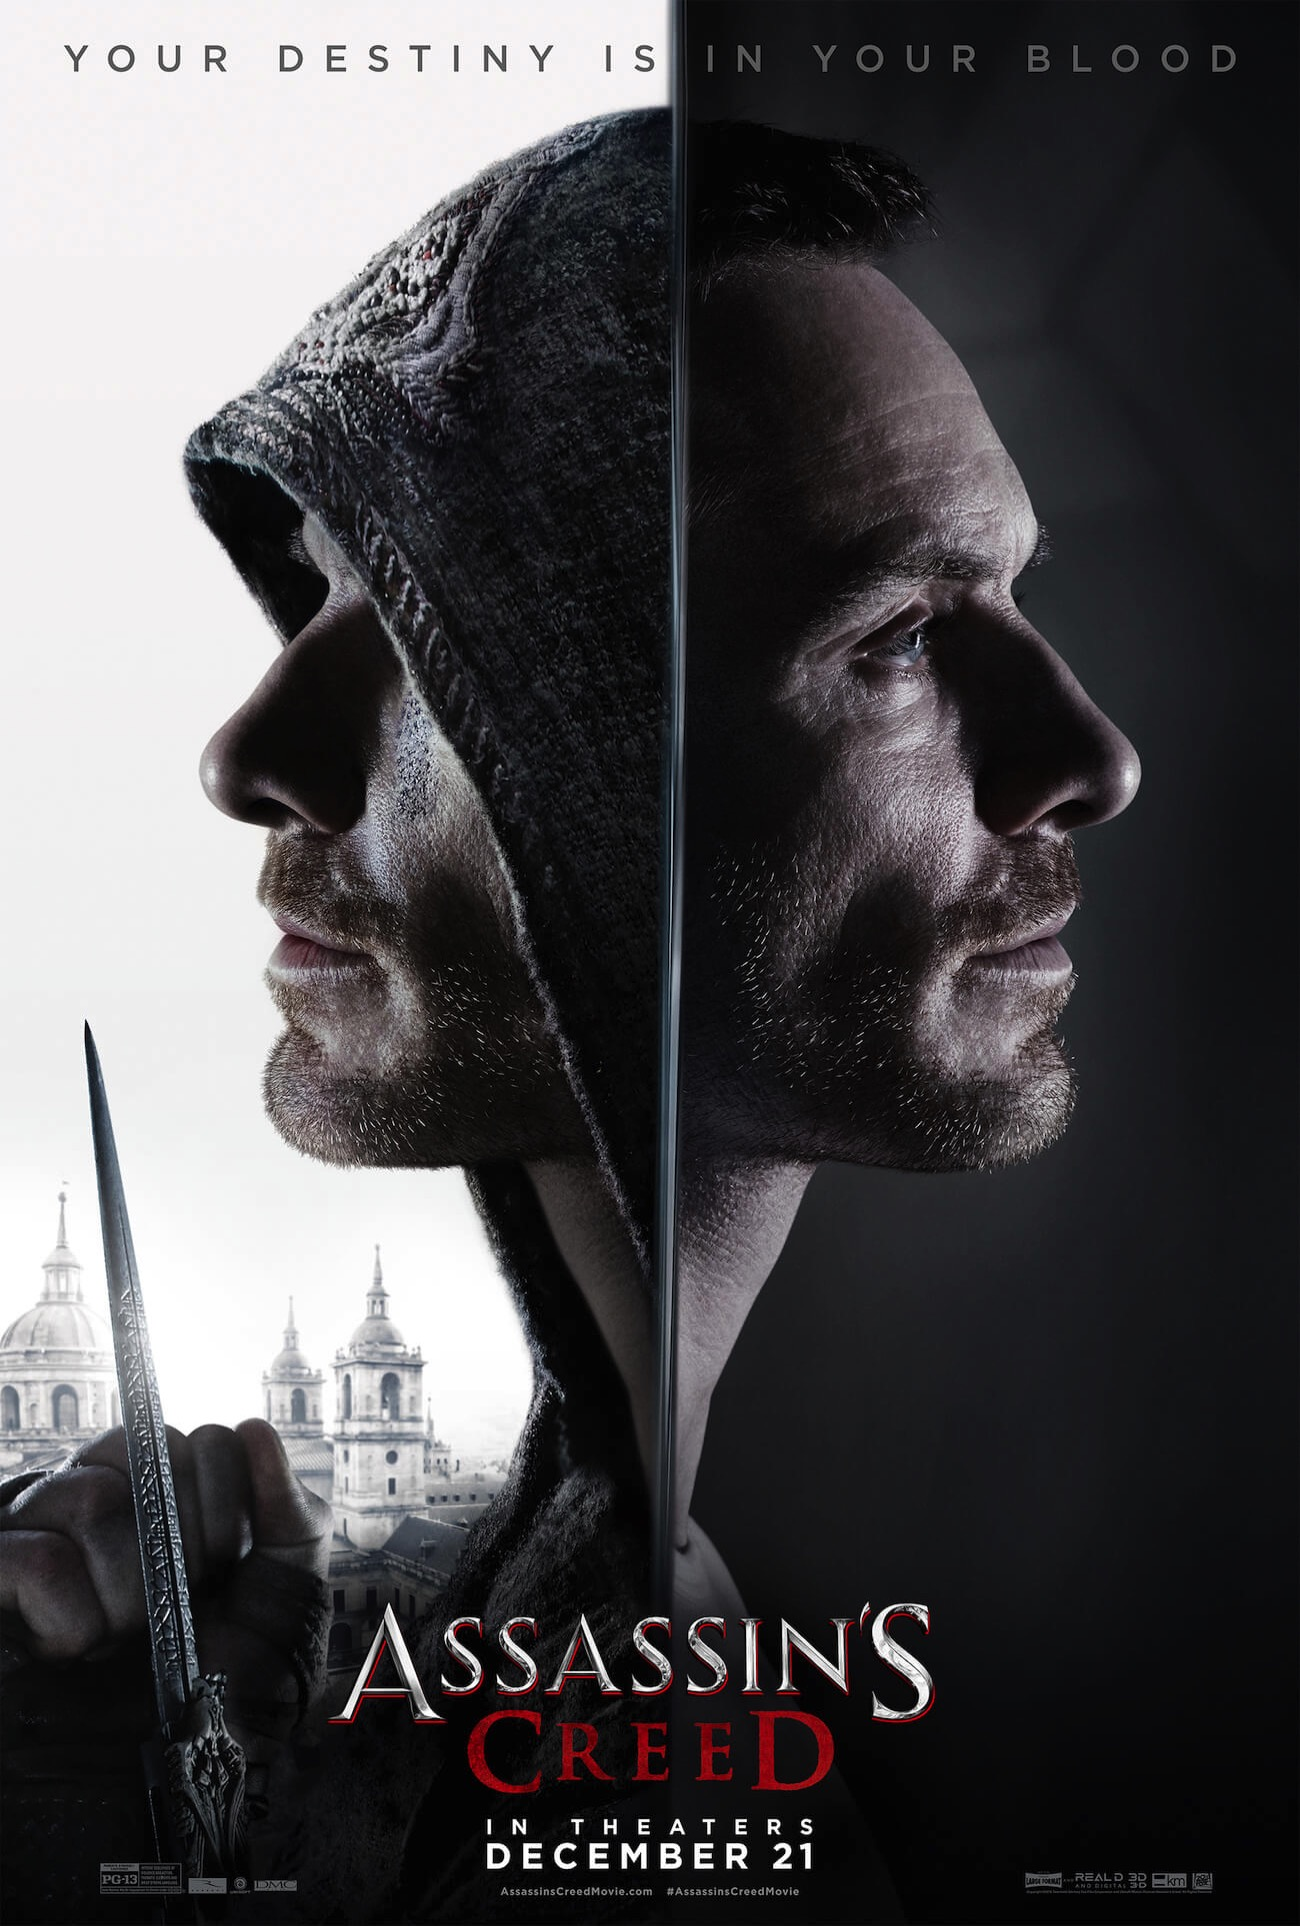 Assassins creed final poster